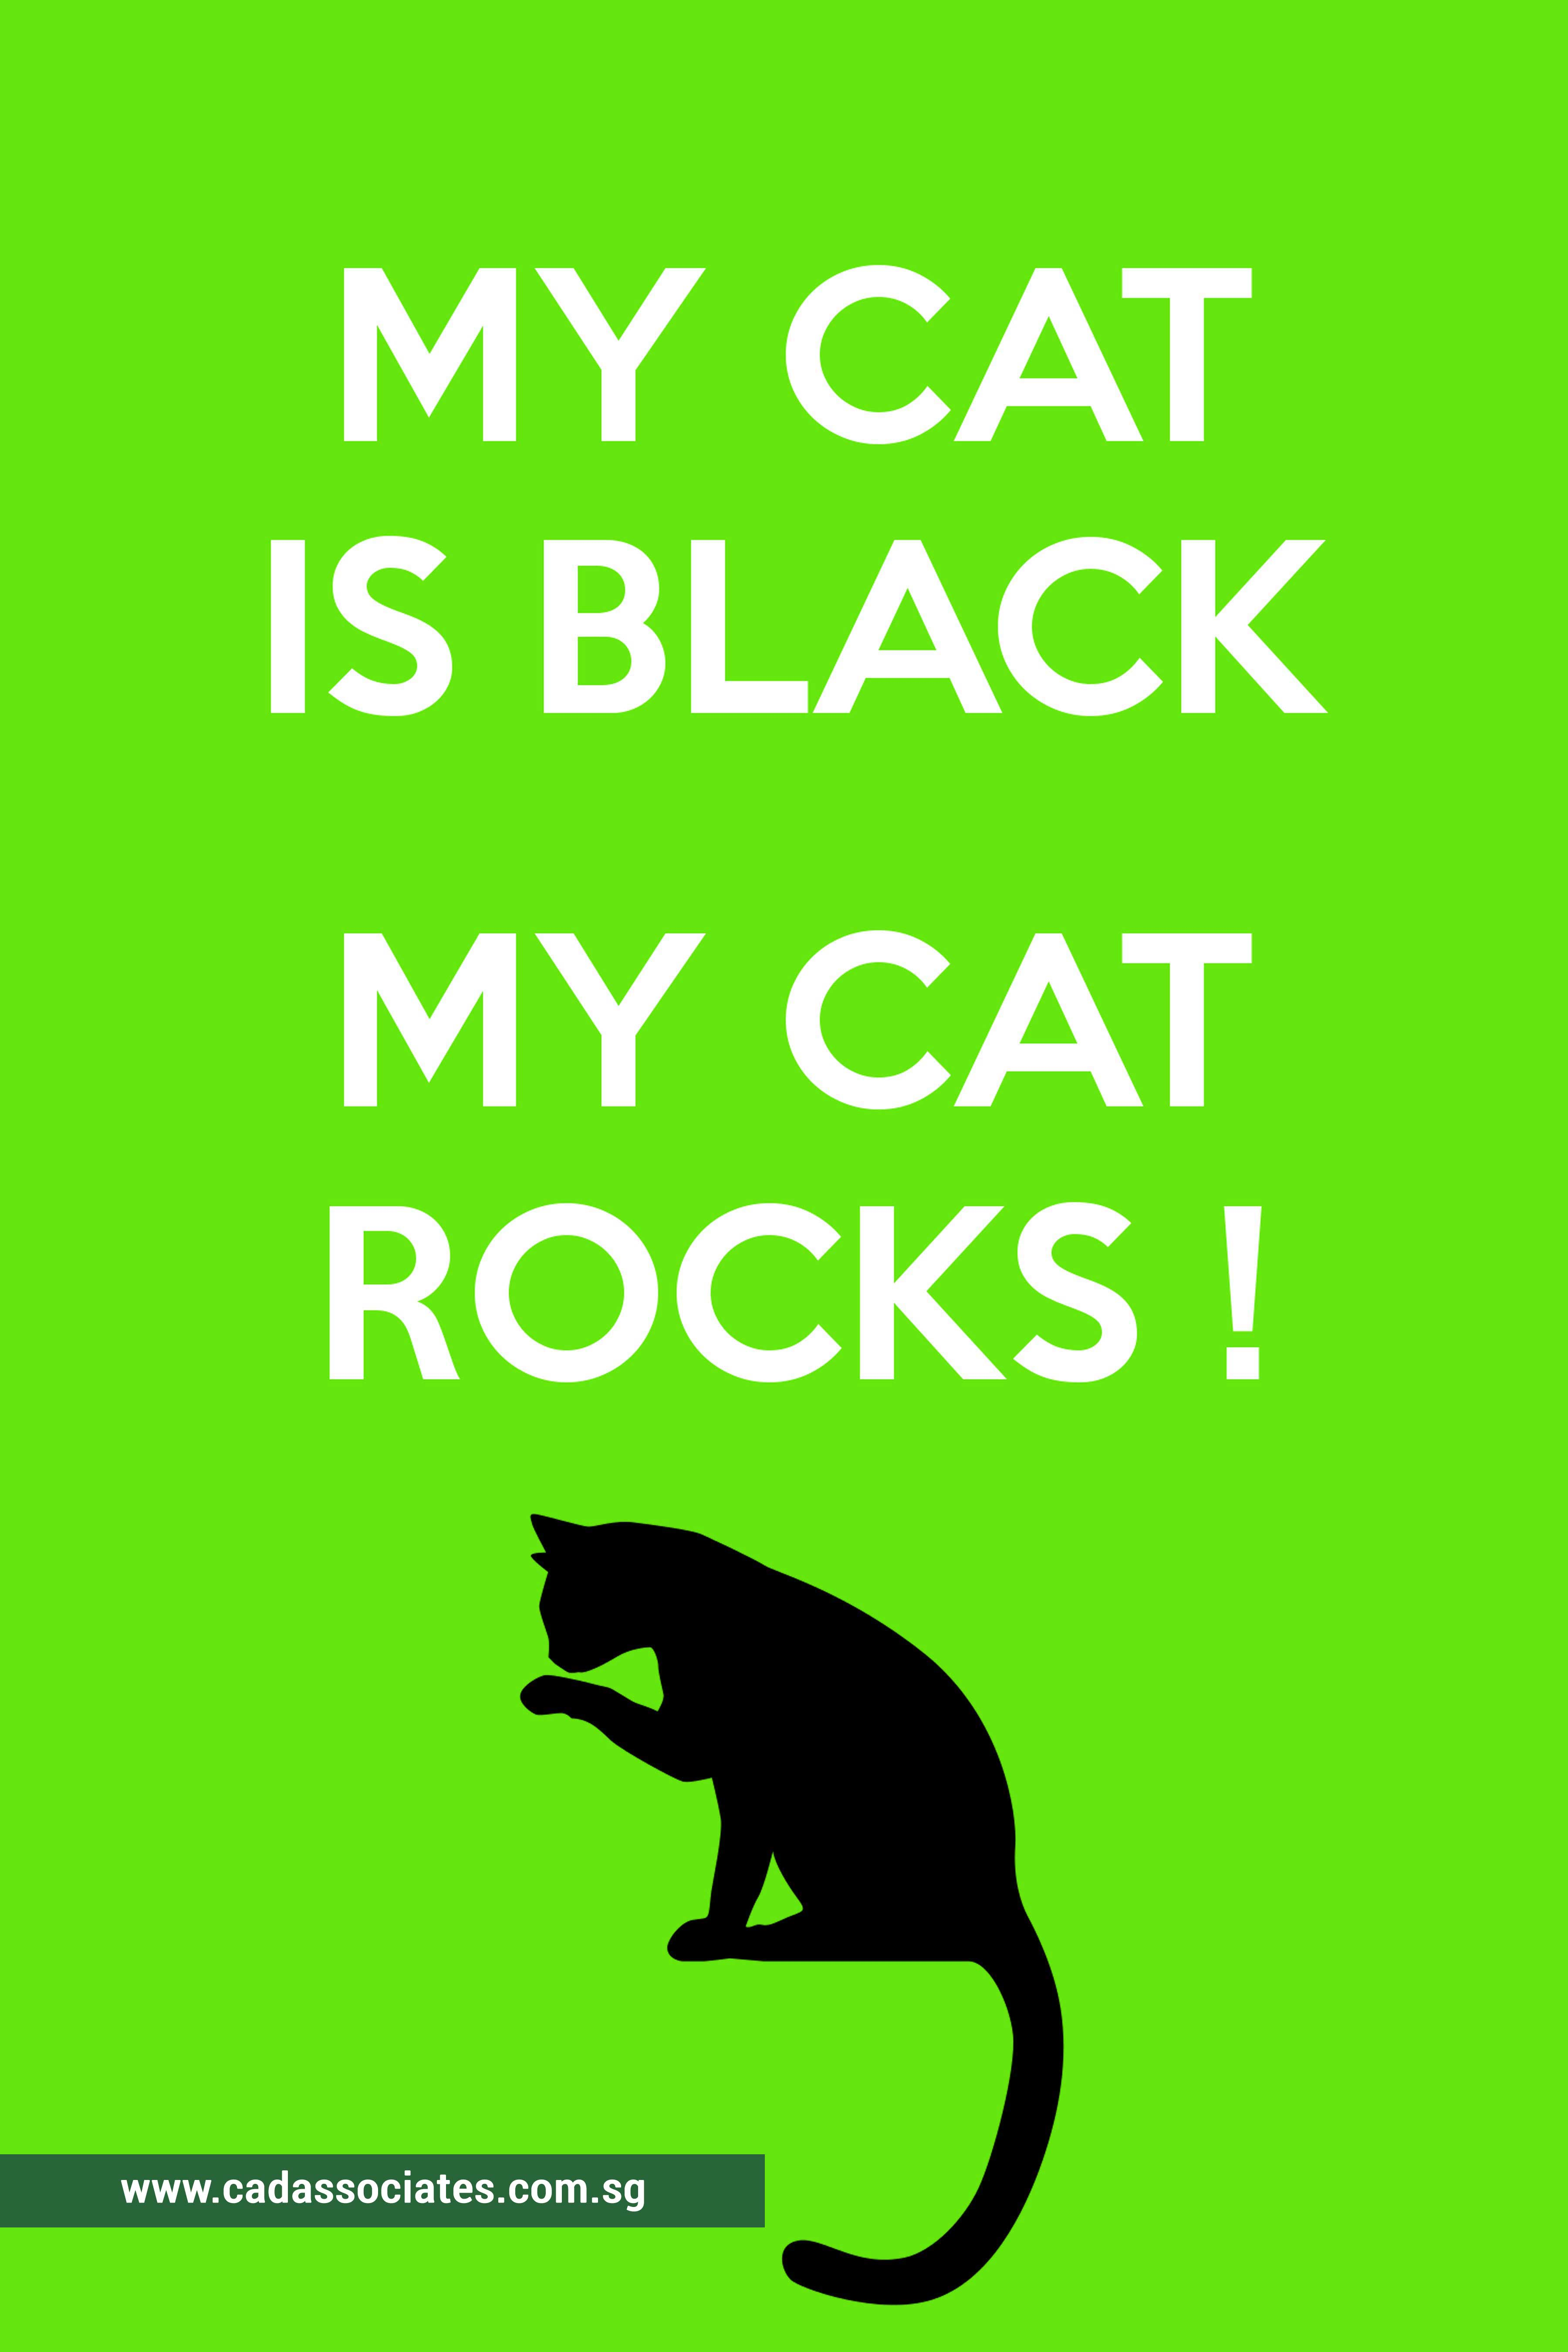 Quotes For Cat Lovers CAD Associates